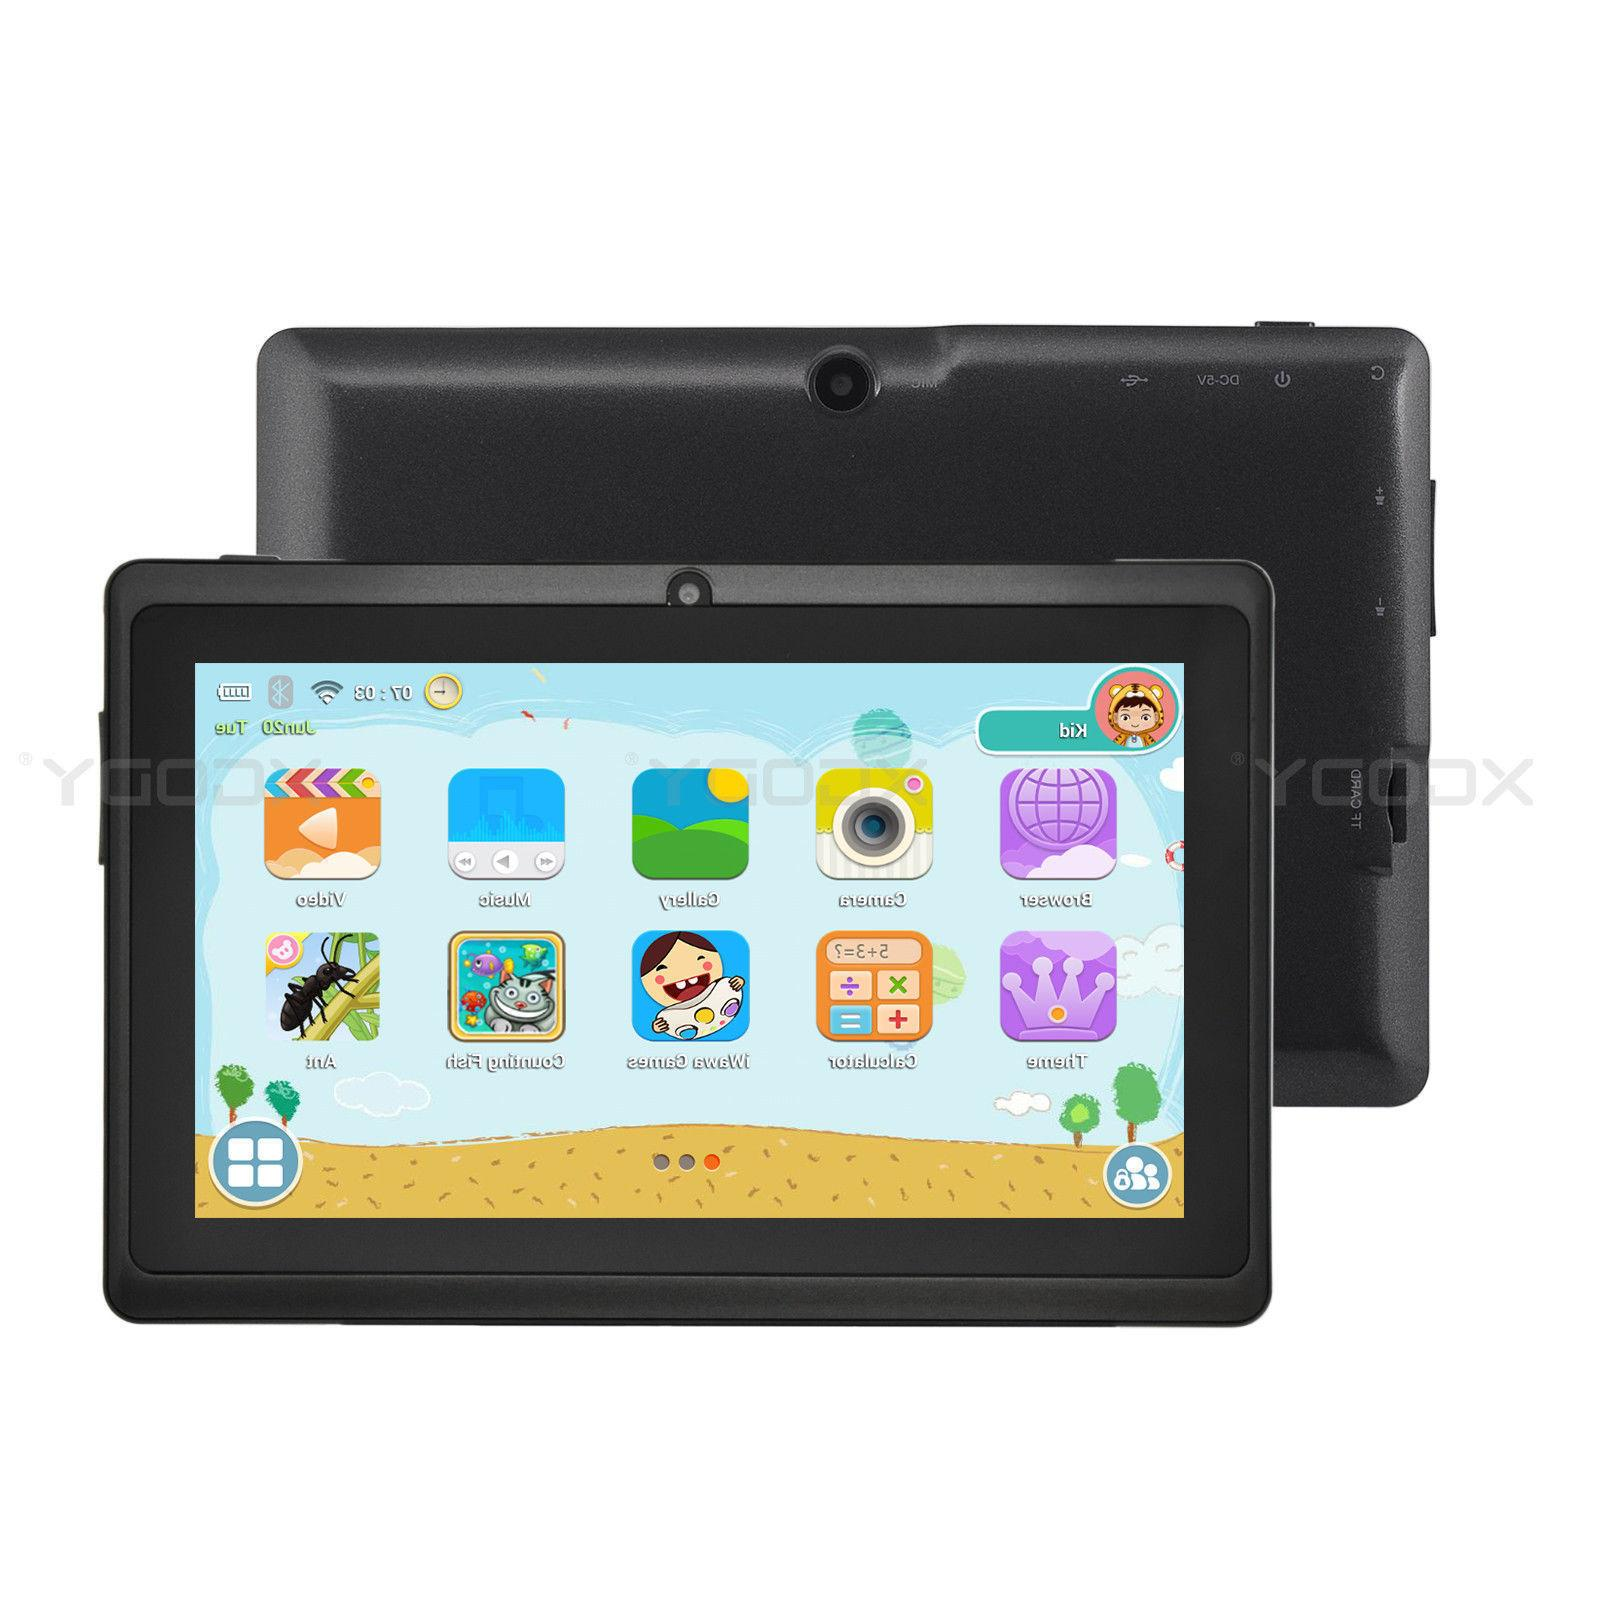 XGODY 7'' Android Tablet WiFi Webcam 16GB for Kids Children